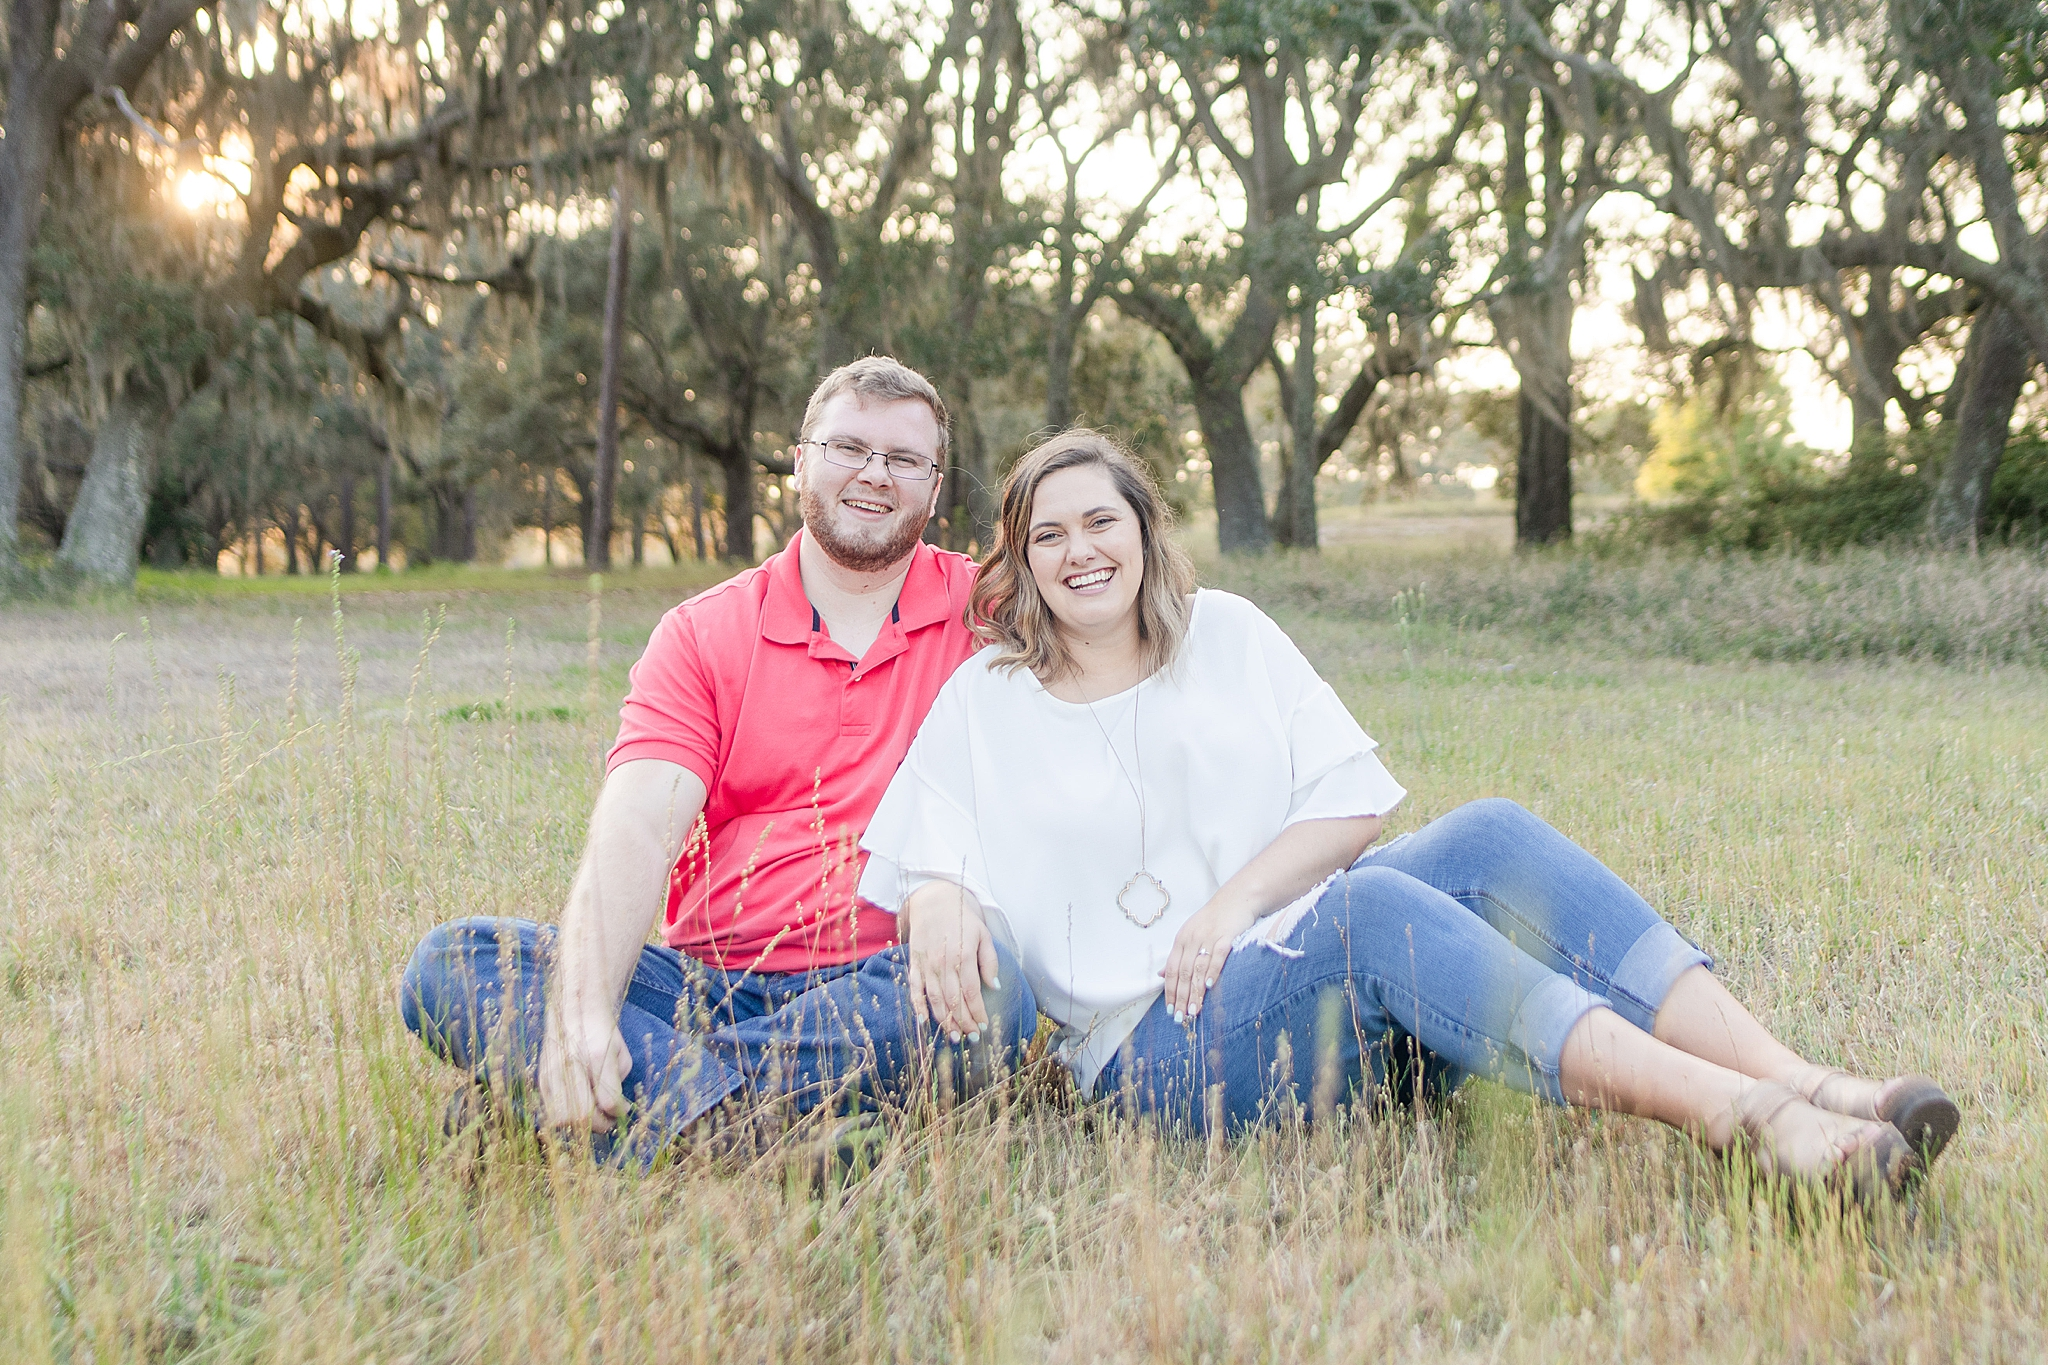 summer engagement session at Gulf State Park with couple in casual clothes